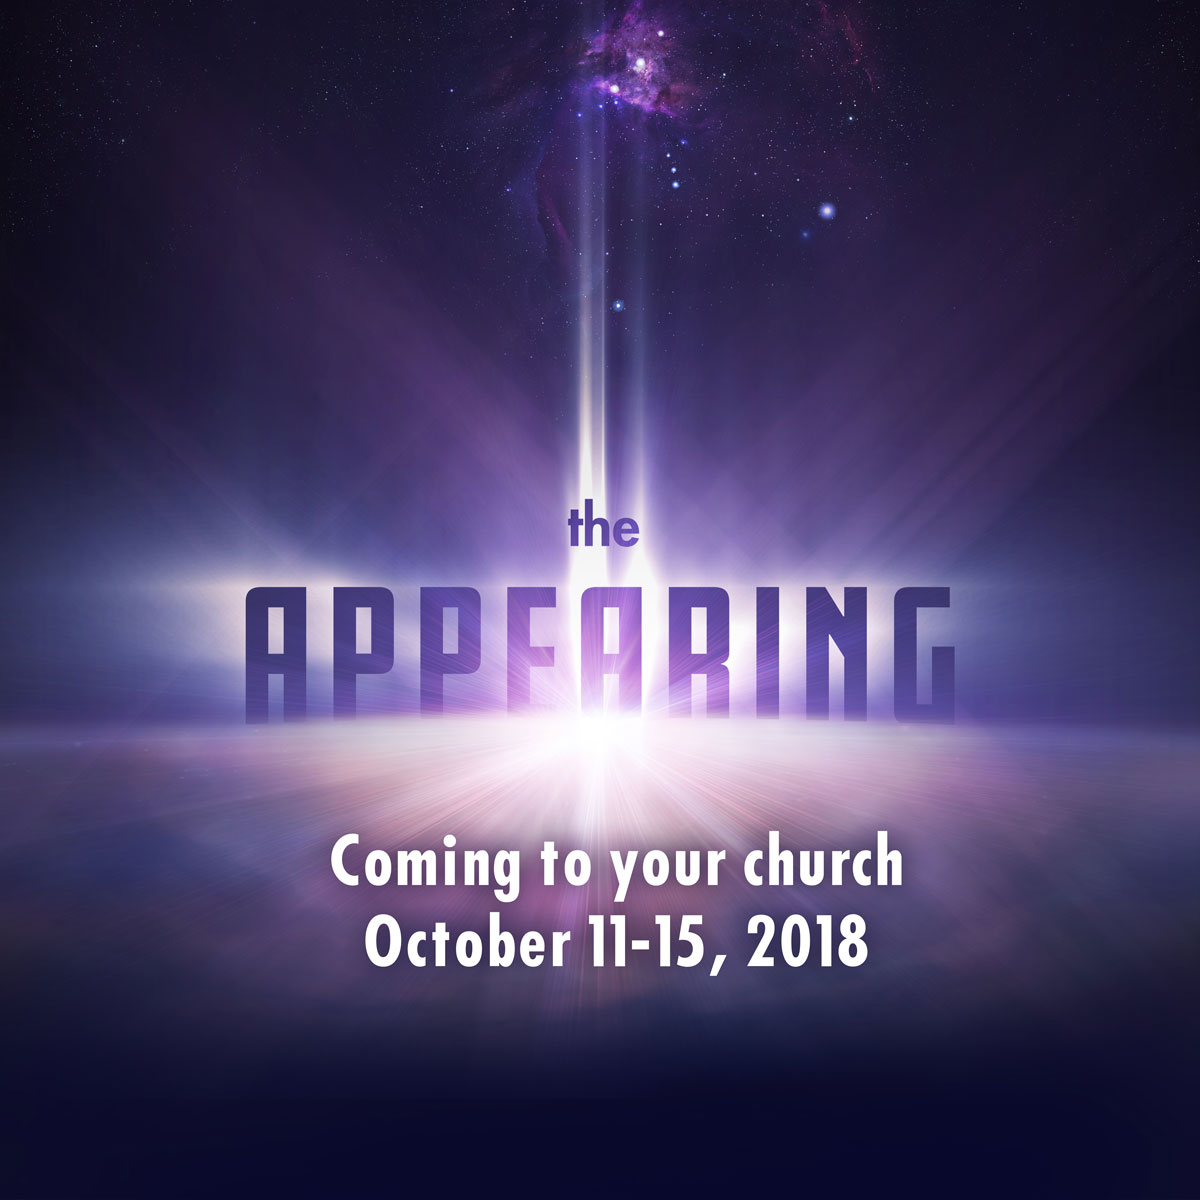 The-Appearing-Promo-Graphic.jpg